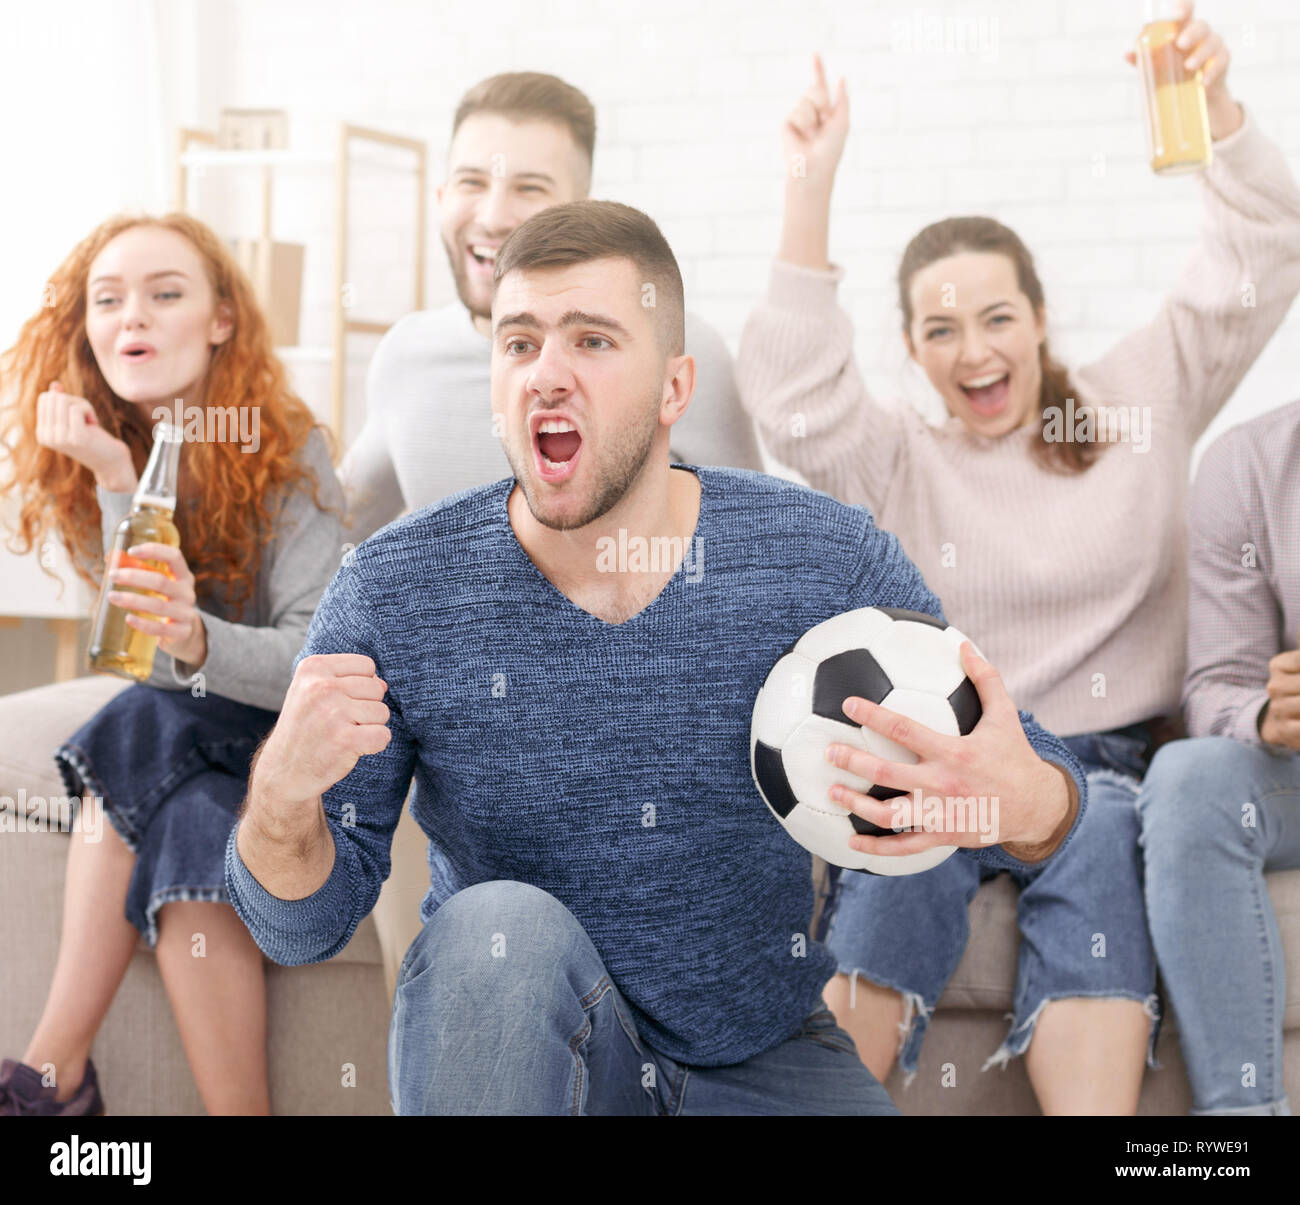 Football fans celebrating victory of favourite team Stock Photo